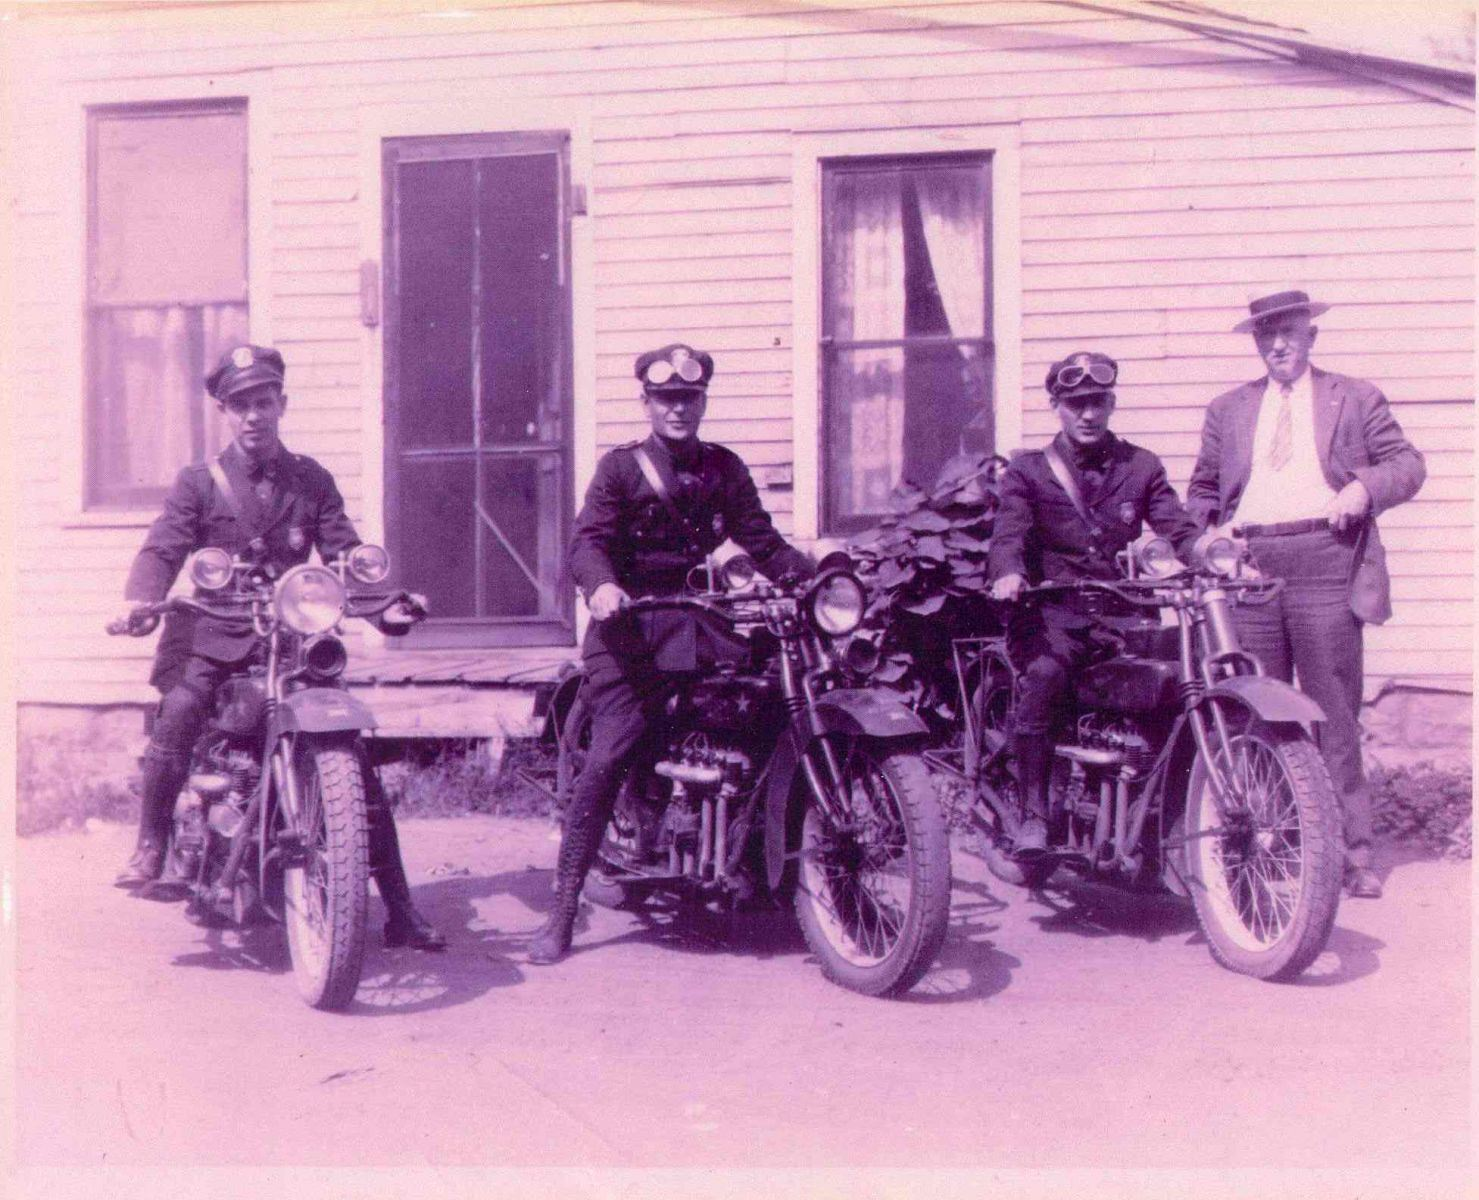 Berrien County Sheriff's Office Motorcycle Squad